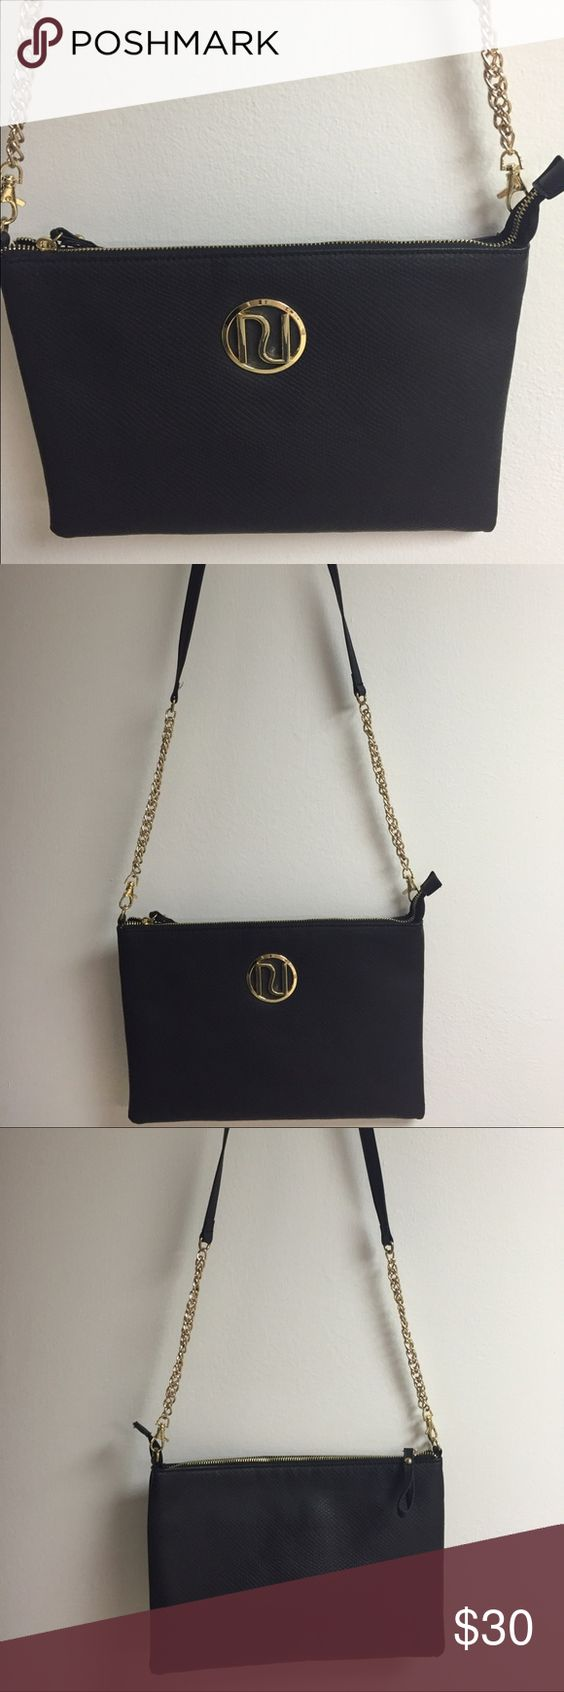 River Island (European) Crossbody Black Bag Purchased in Europe; the bag carried once ; black, soft material with gold hardware River Island Bags Crossbody Bags